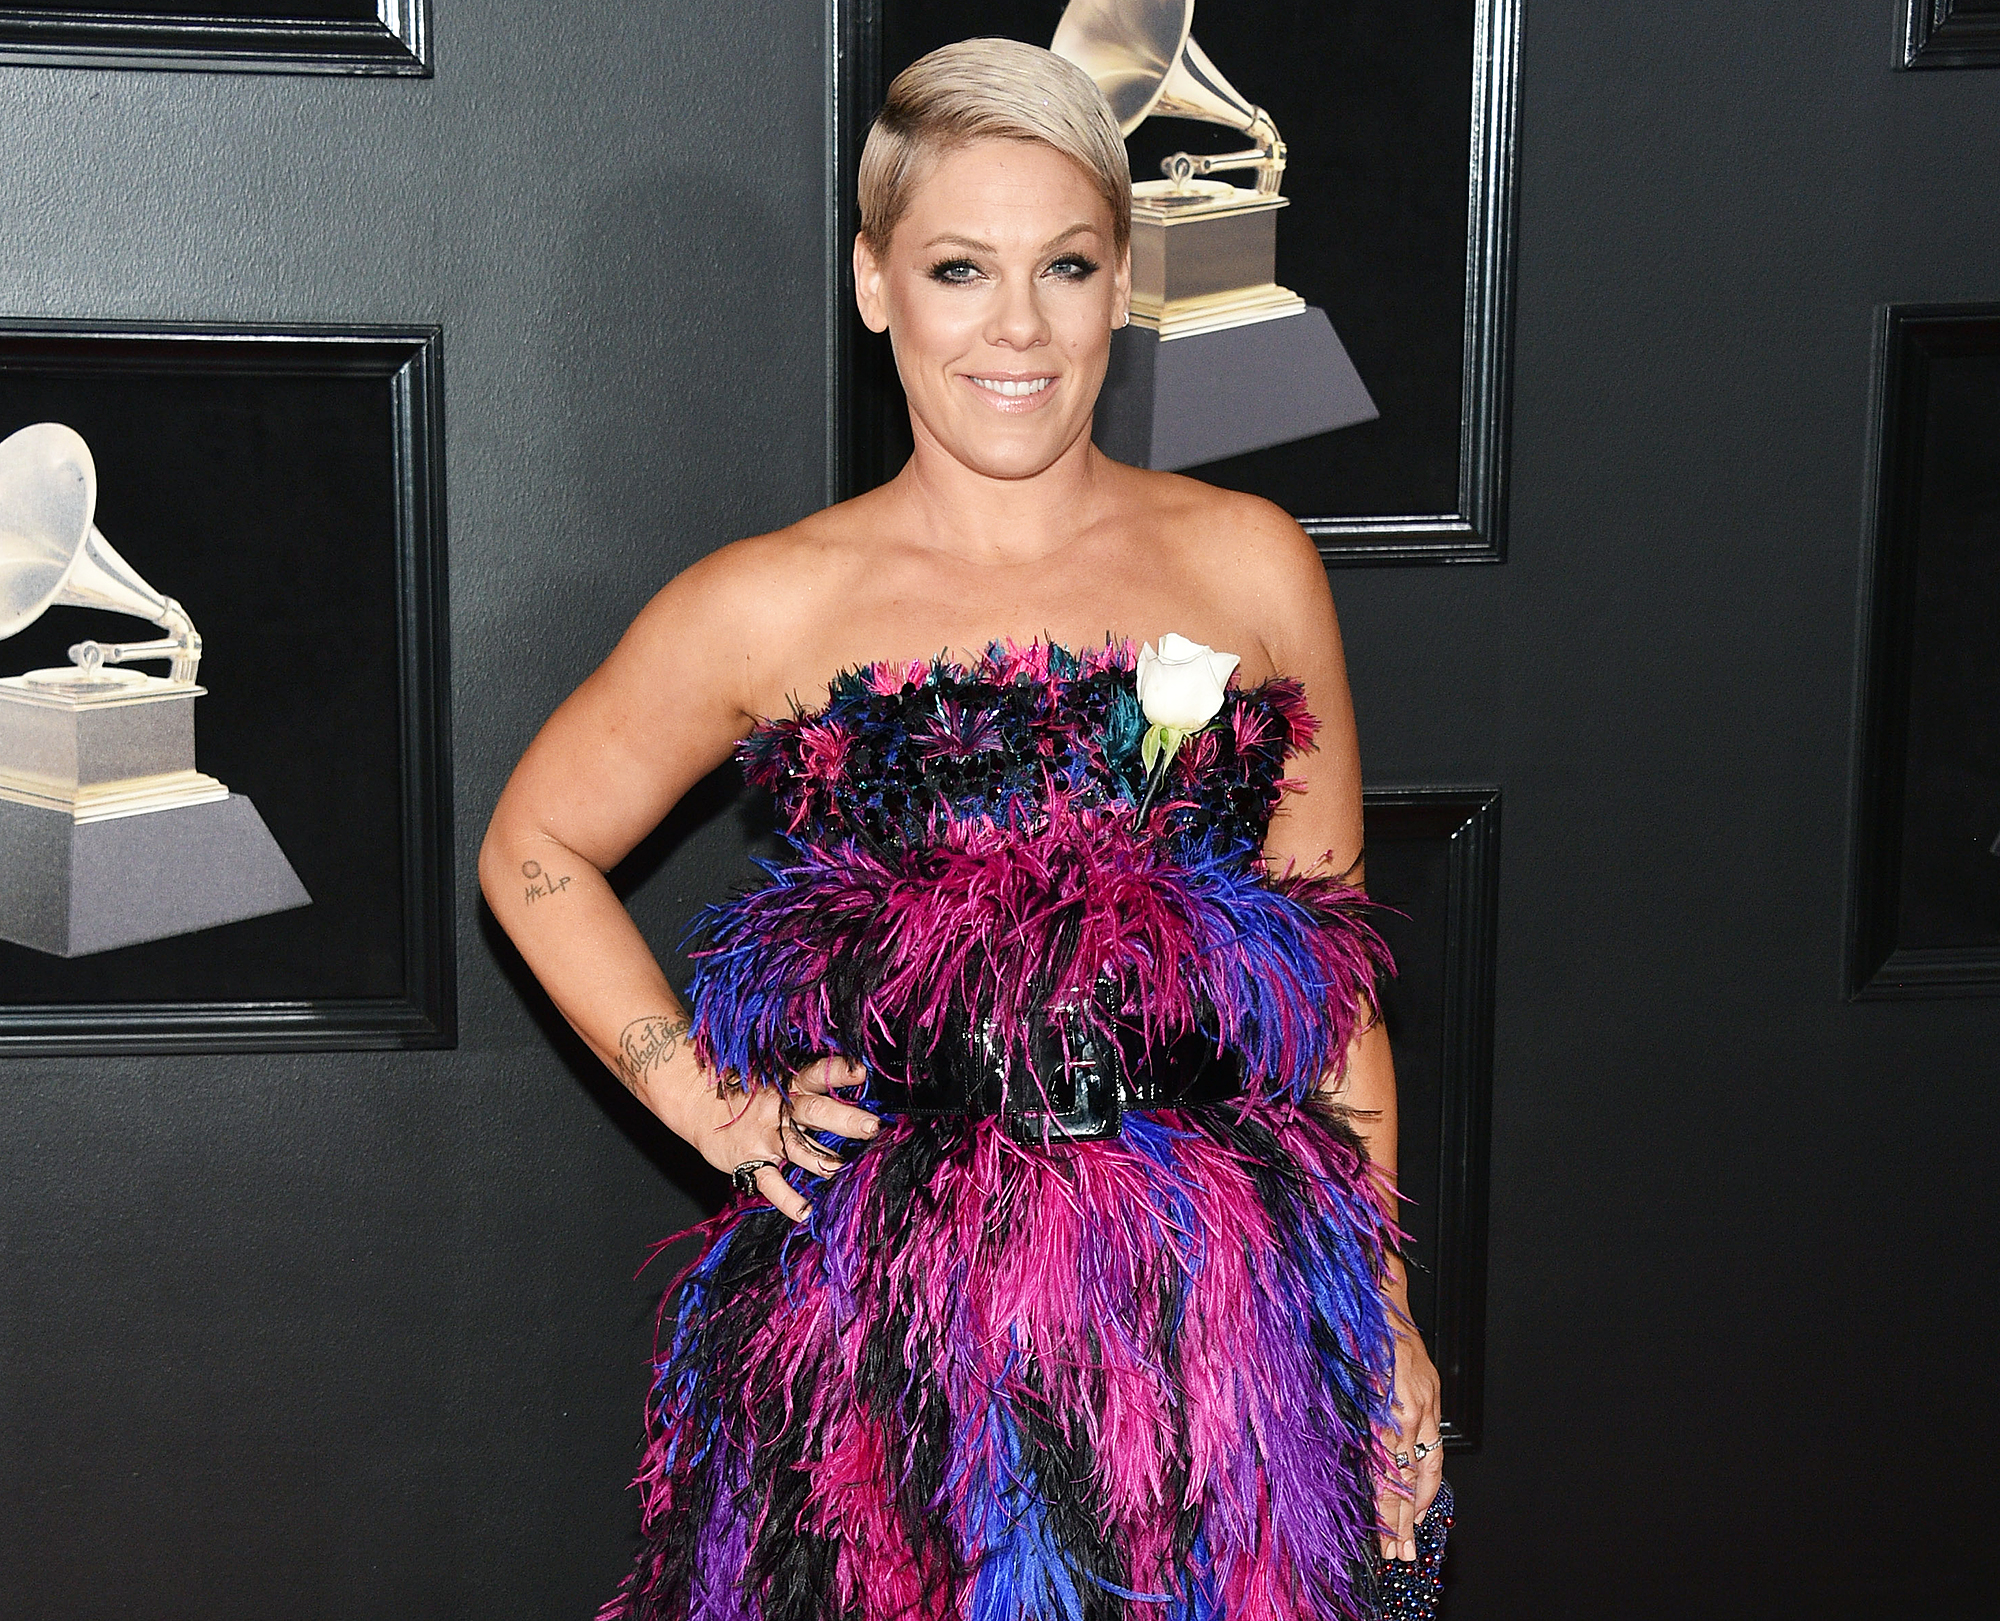 Pink owns Twitter troll who called her old: